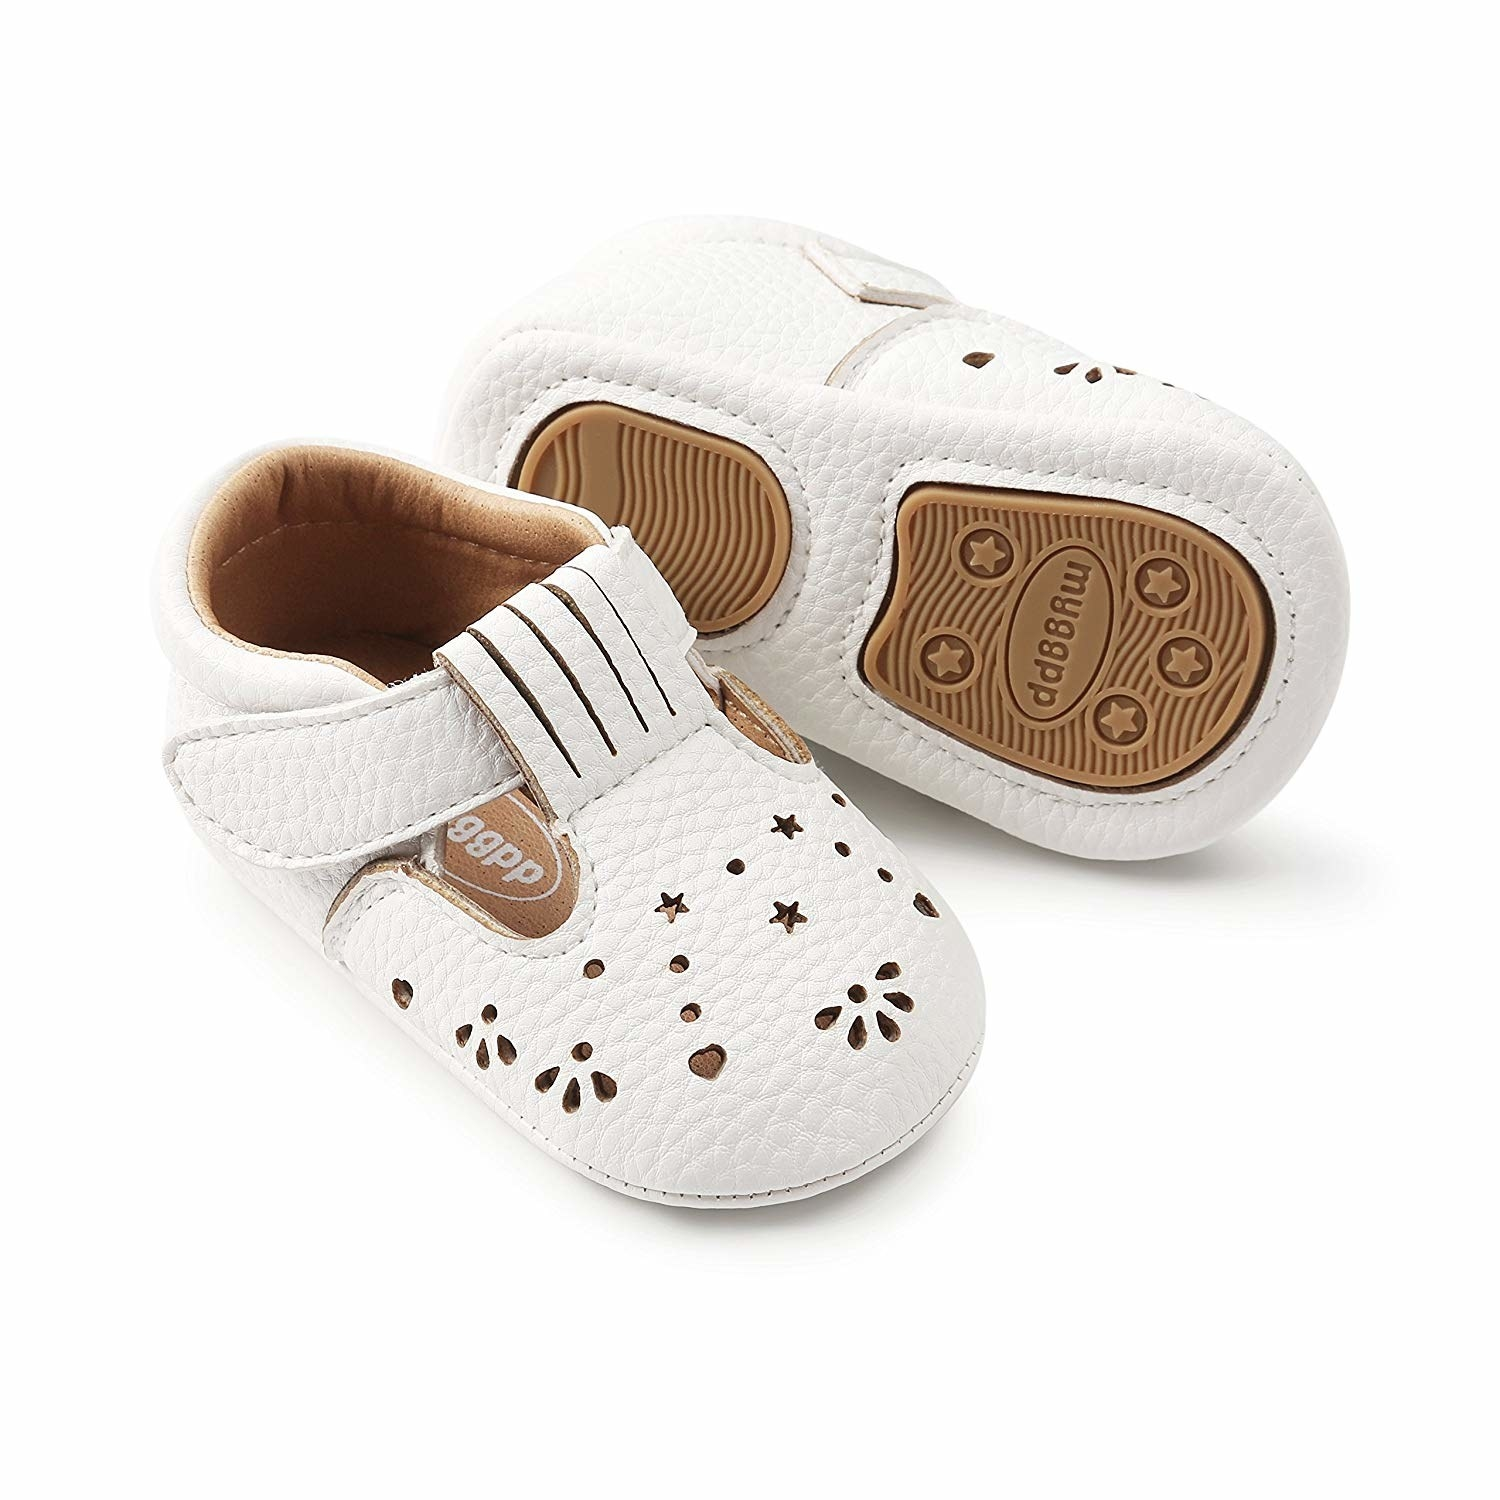 Fashion Baby Boys Girls Canvas Toddler Sneaker Anti-slip First Walkers Shoes 0-18 Months Dog-78